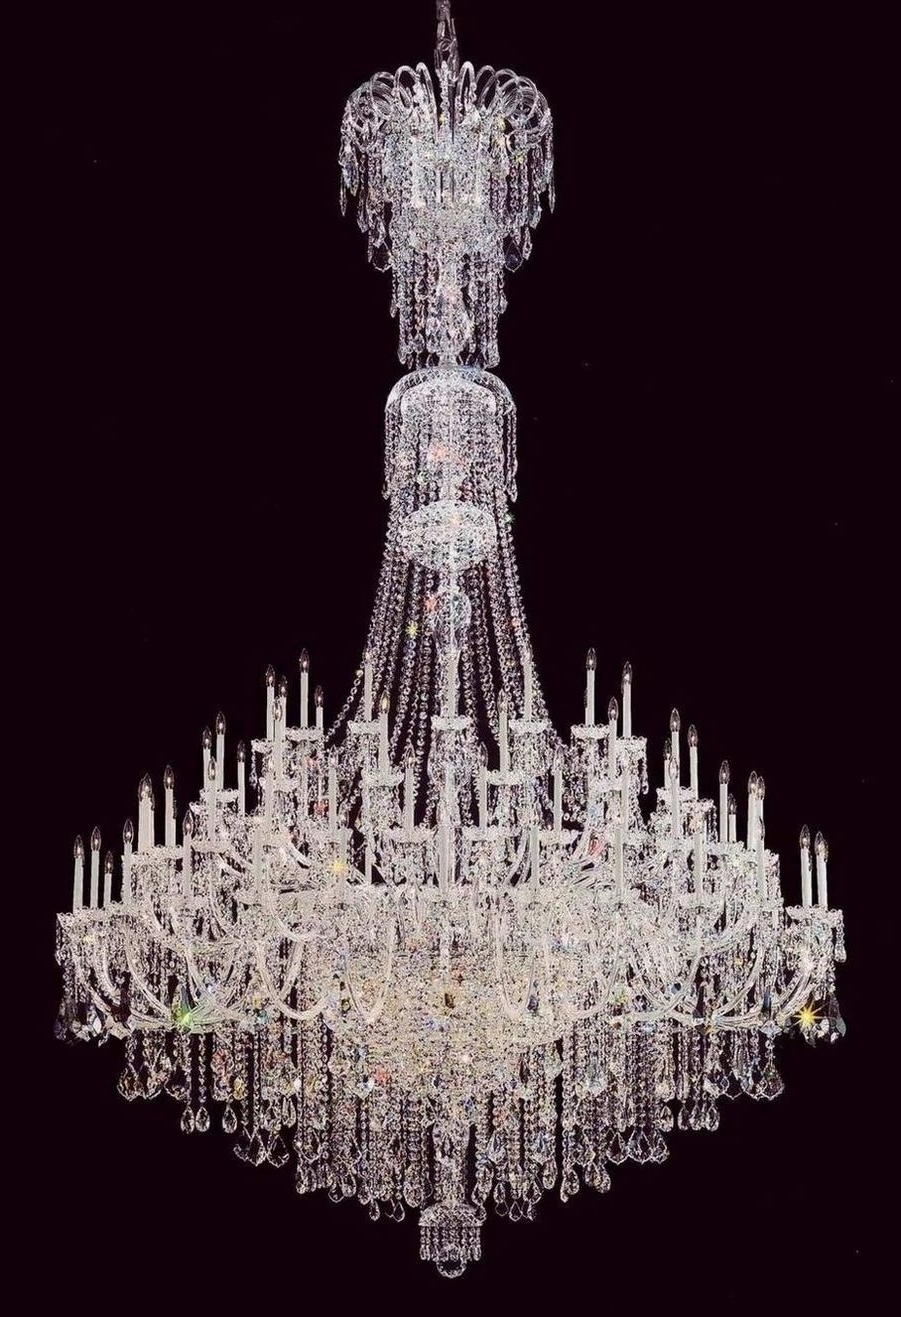 Cheap Foyer Crystal Chandelier, Buy Quality Foyer Chandelier within Widely used Huge Crystal Chandelier